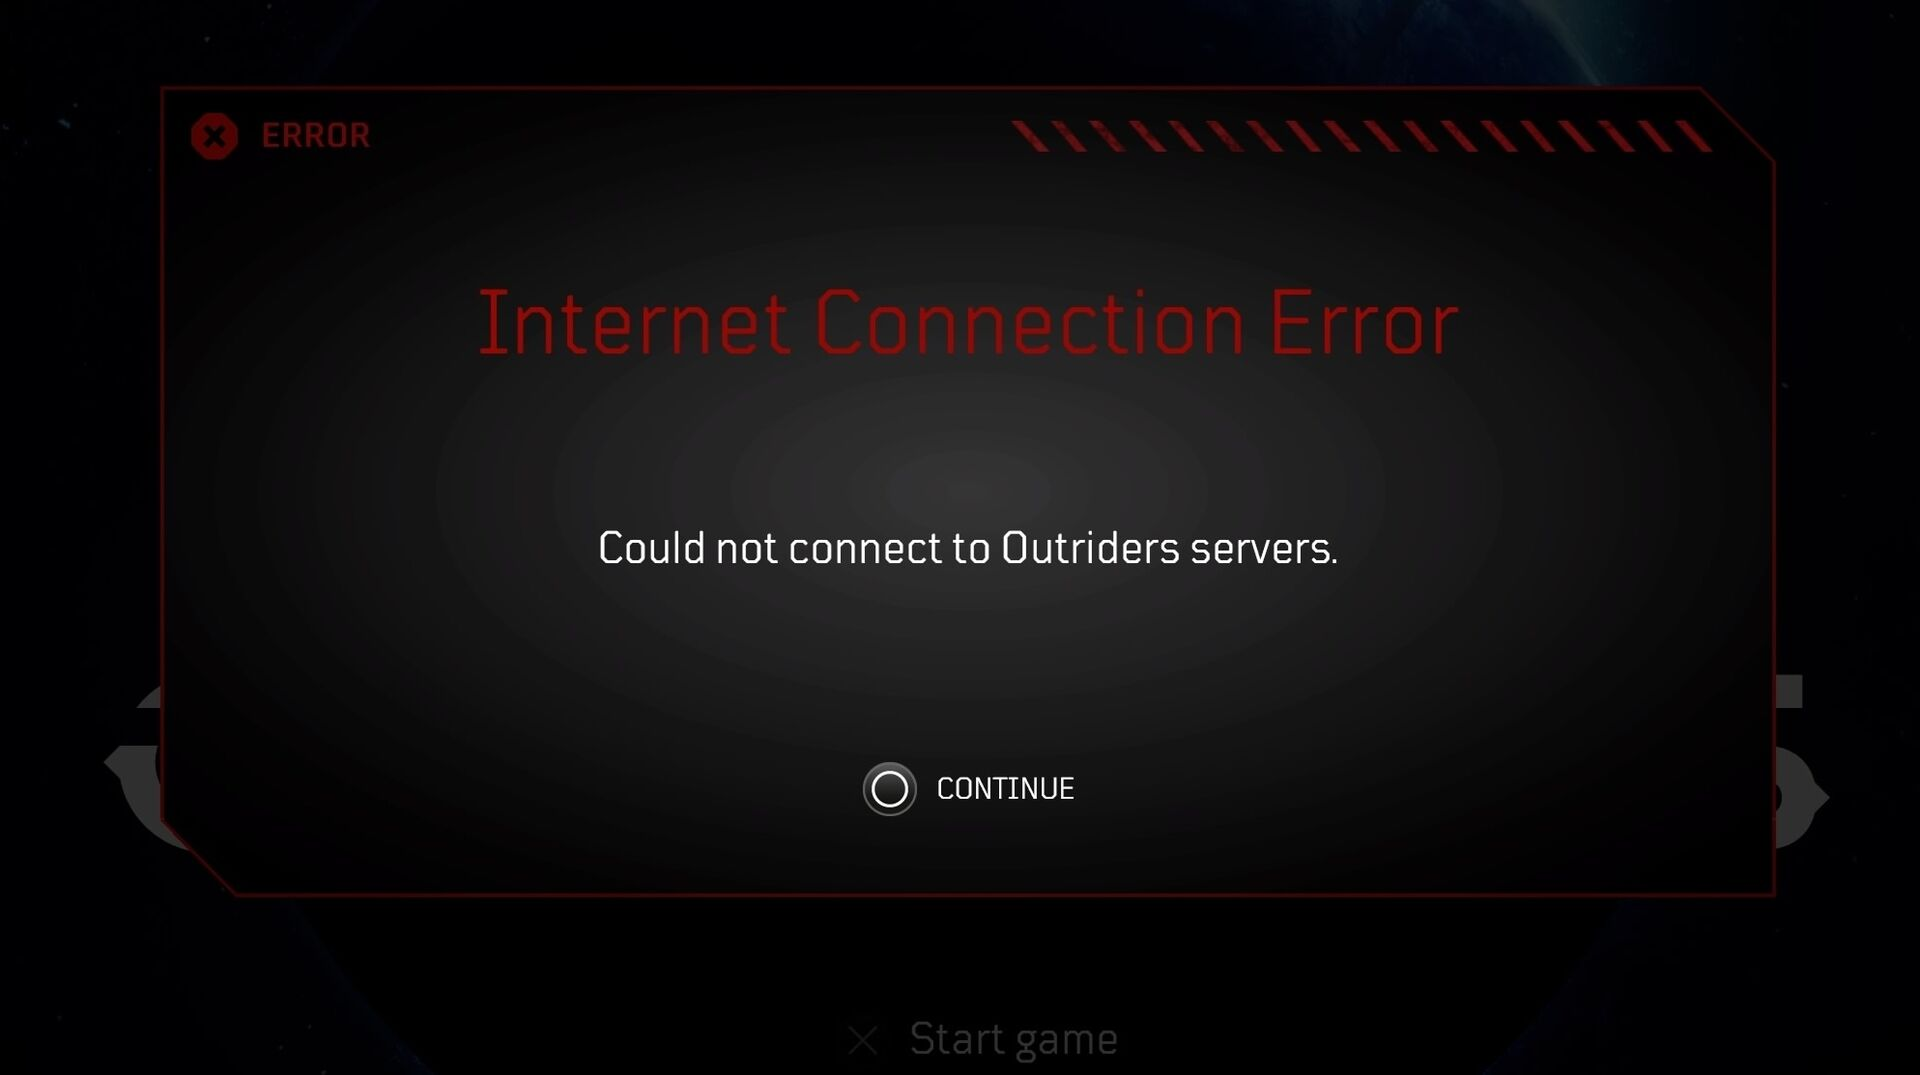 Outriders is suffering login issues on launch day • Eurogamer.net